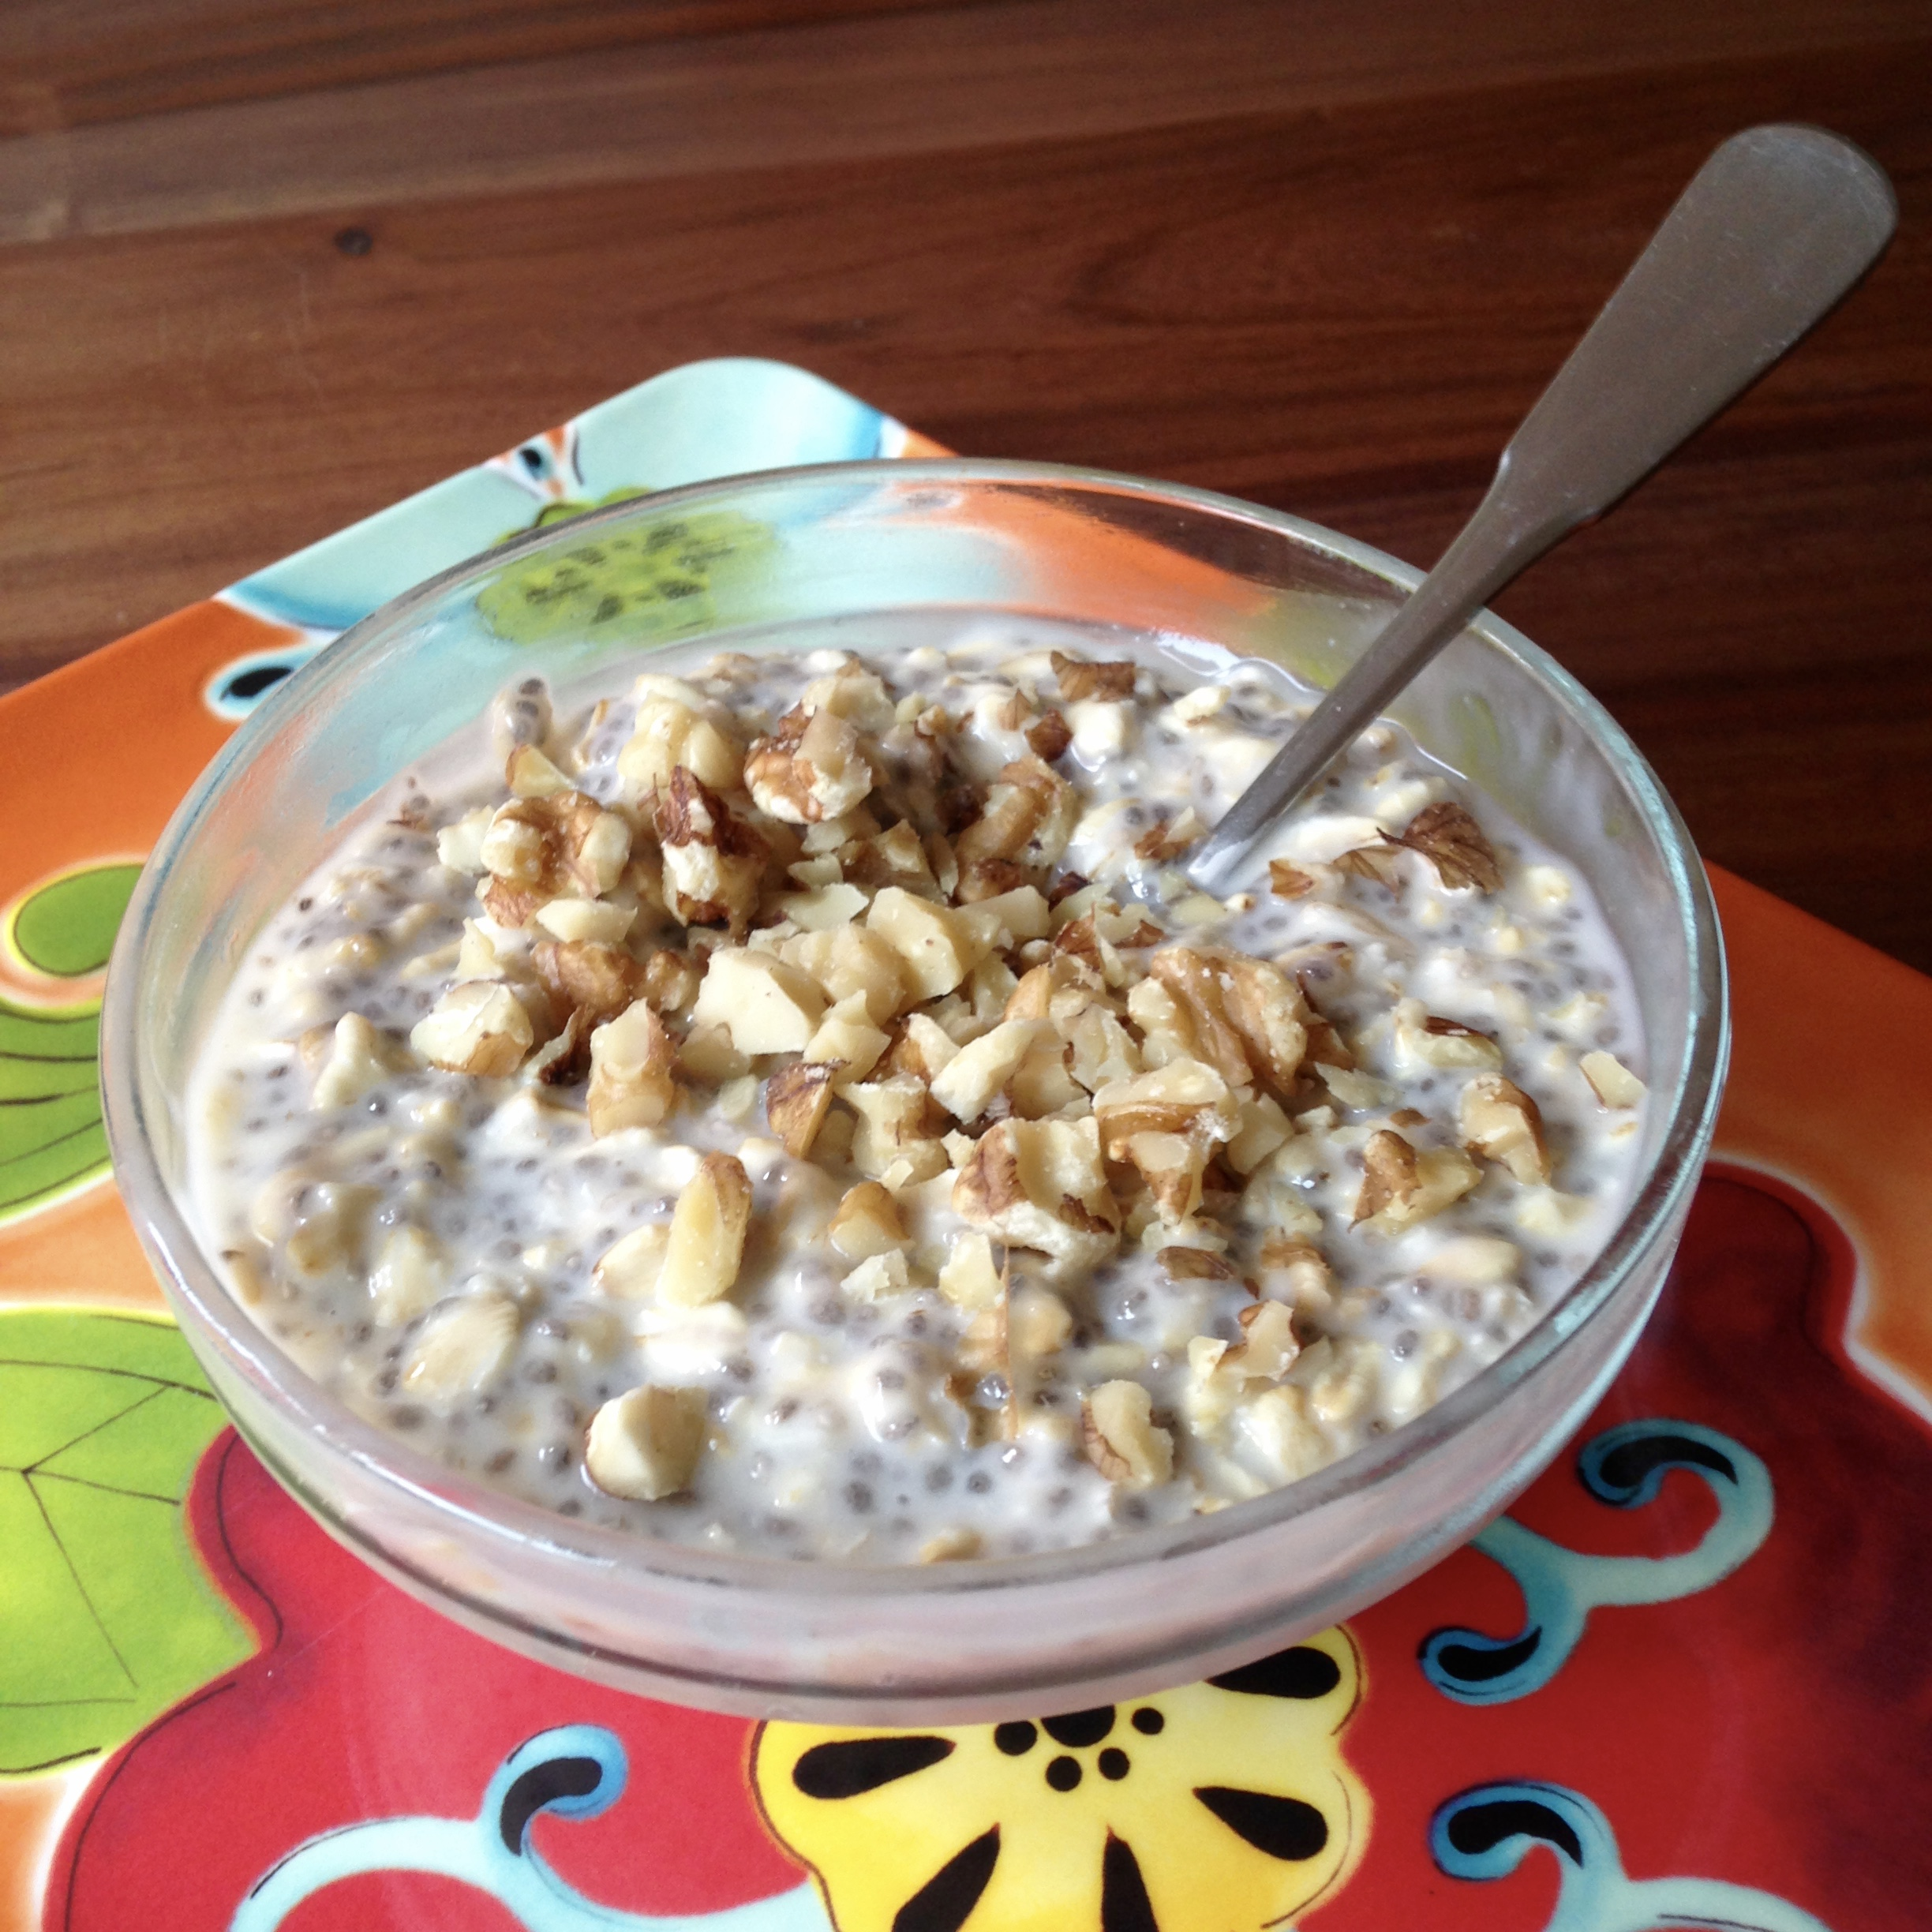 Chopped nuts are a great addition to the overnight oats recipe.